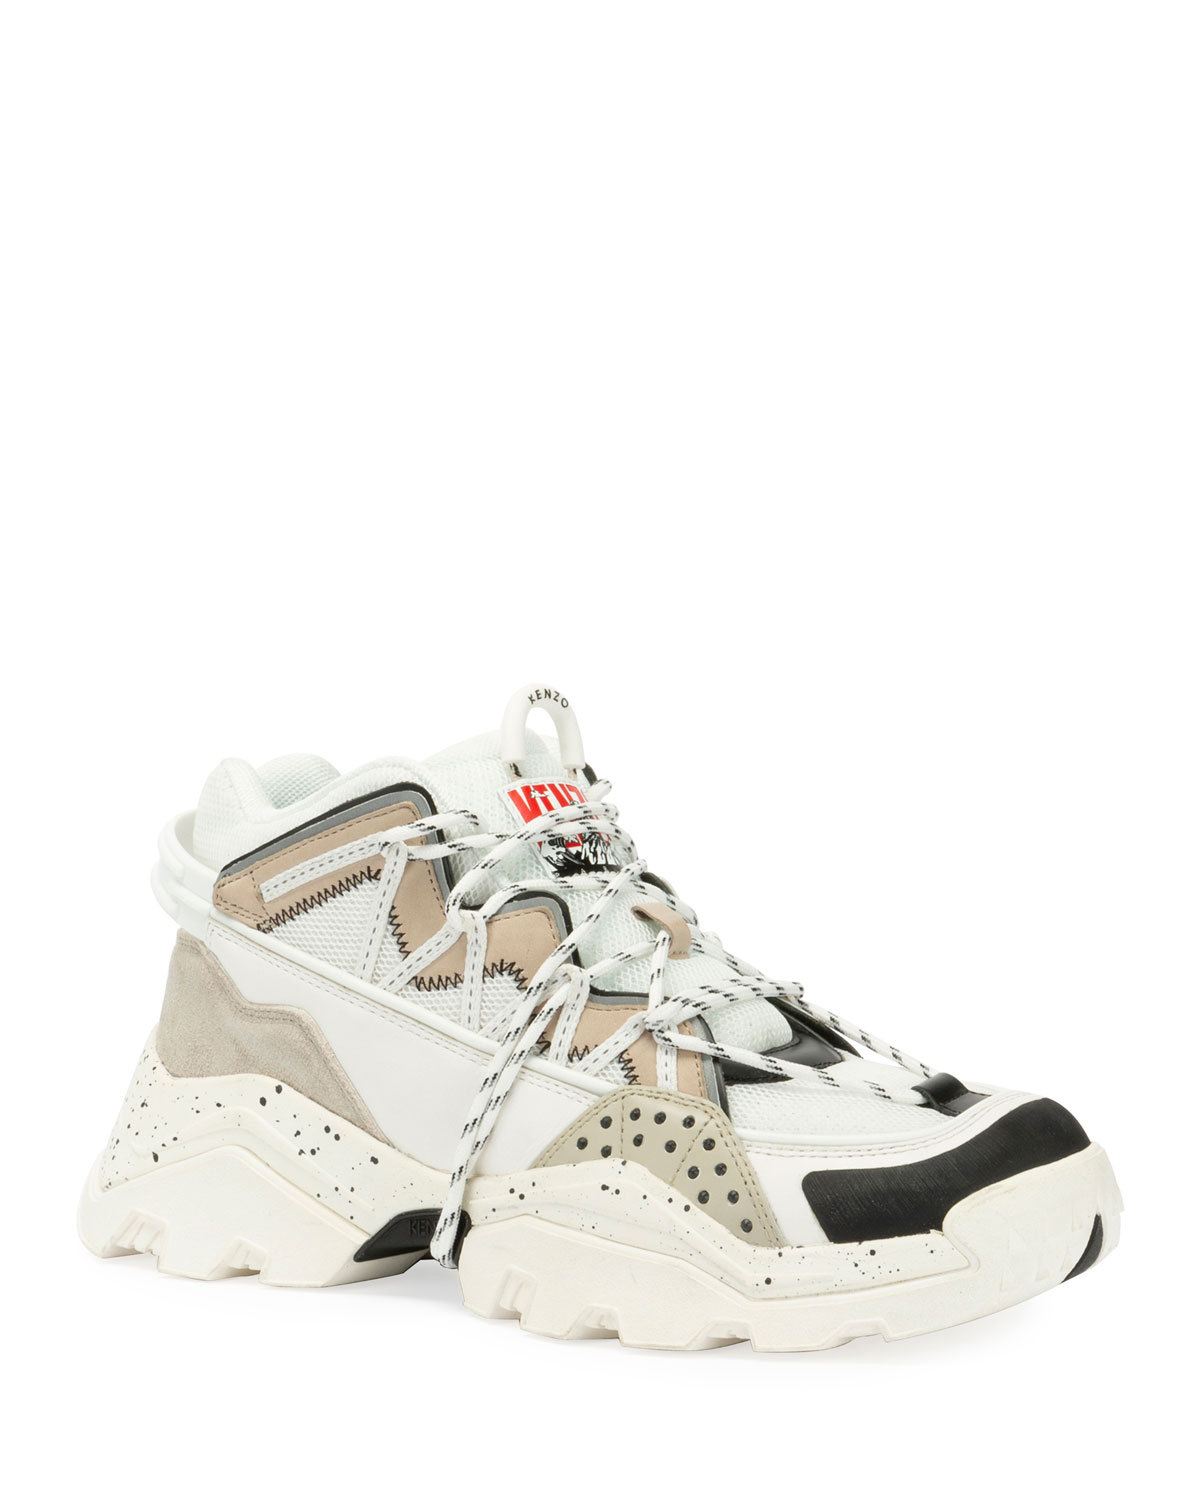 Kenzo Sneakers Men's Inka Chunky Speckled Wraparound-Lace Sneakers